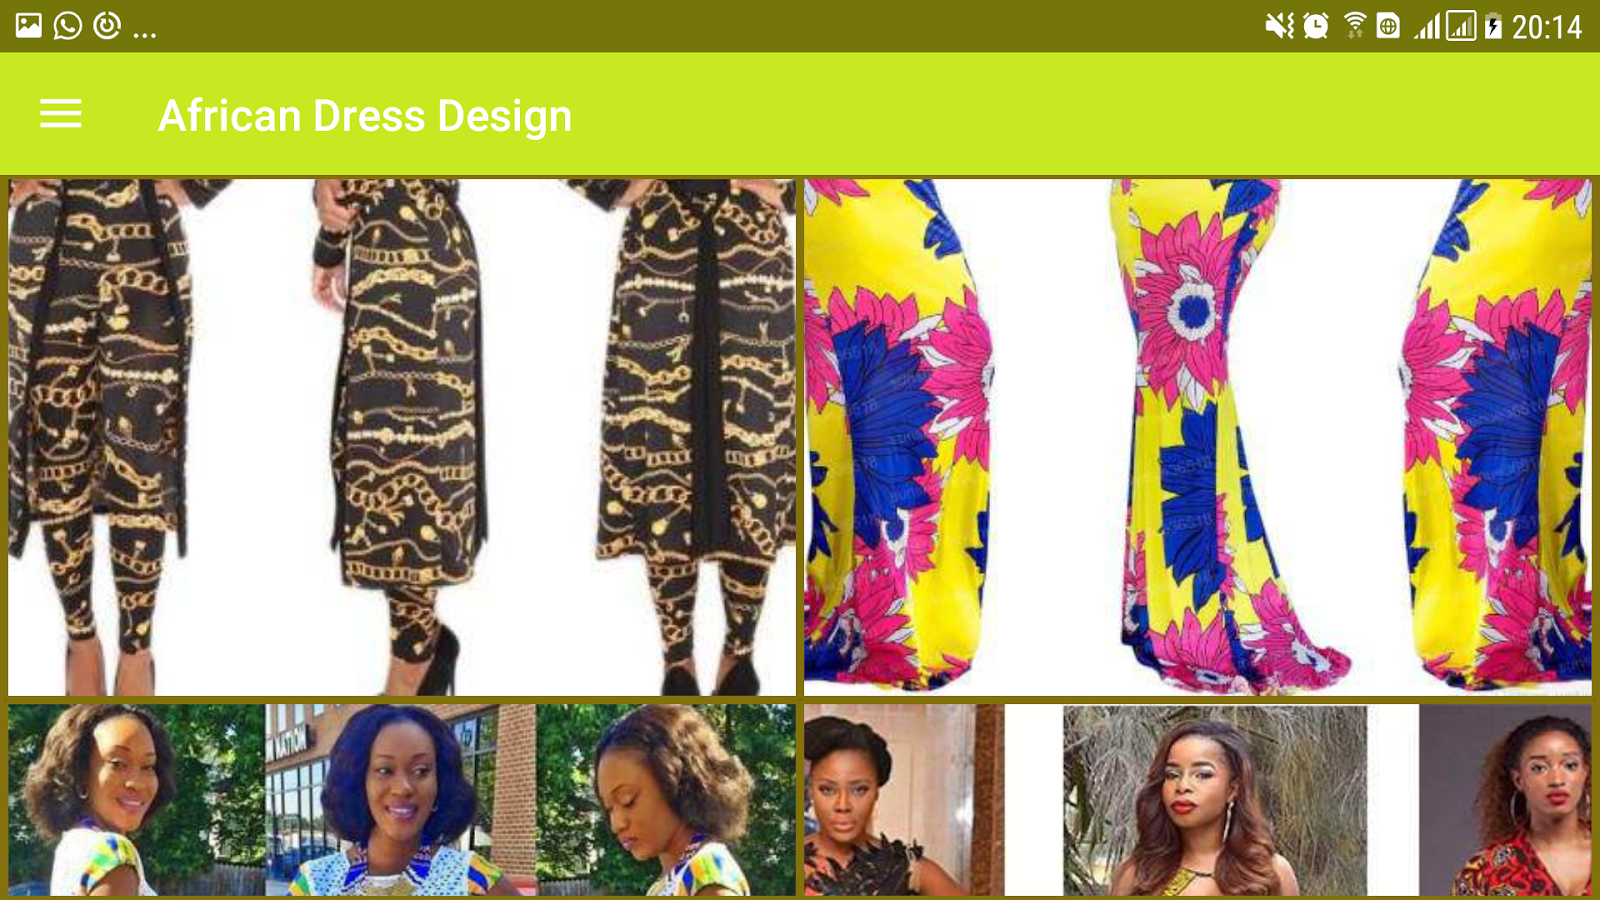 New African Dress Design 16 Apk Download Android Lifestyle Apps Circuit Board Embellished Frame Creativitylife Pinterest Screenshot 8